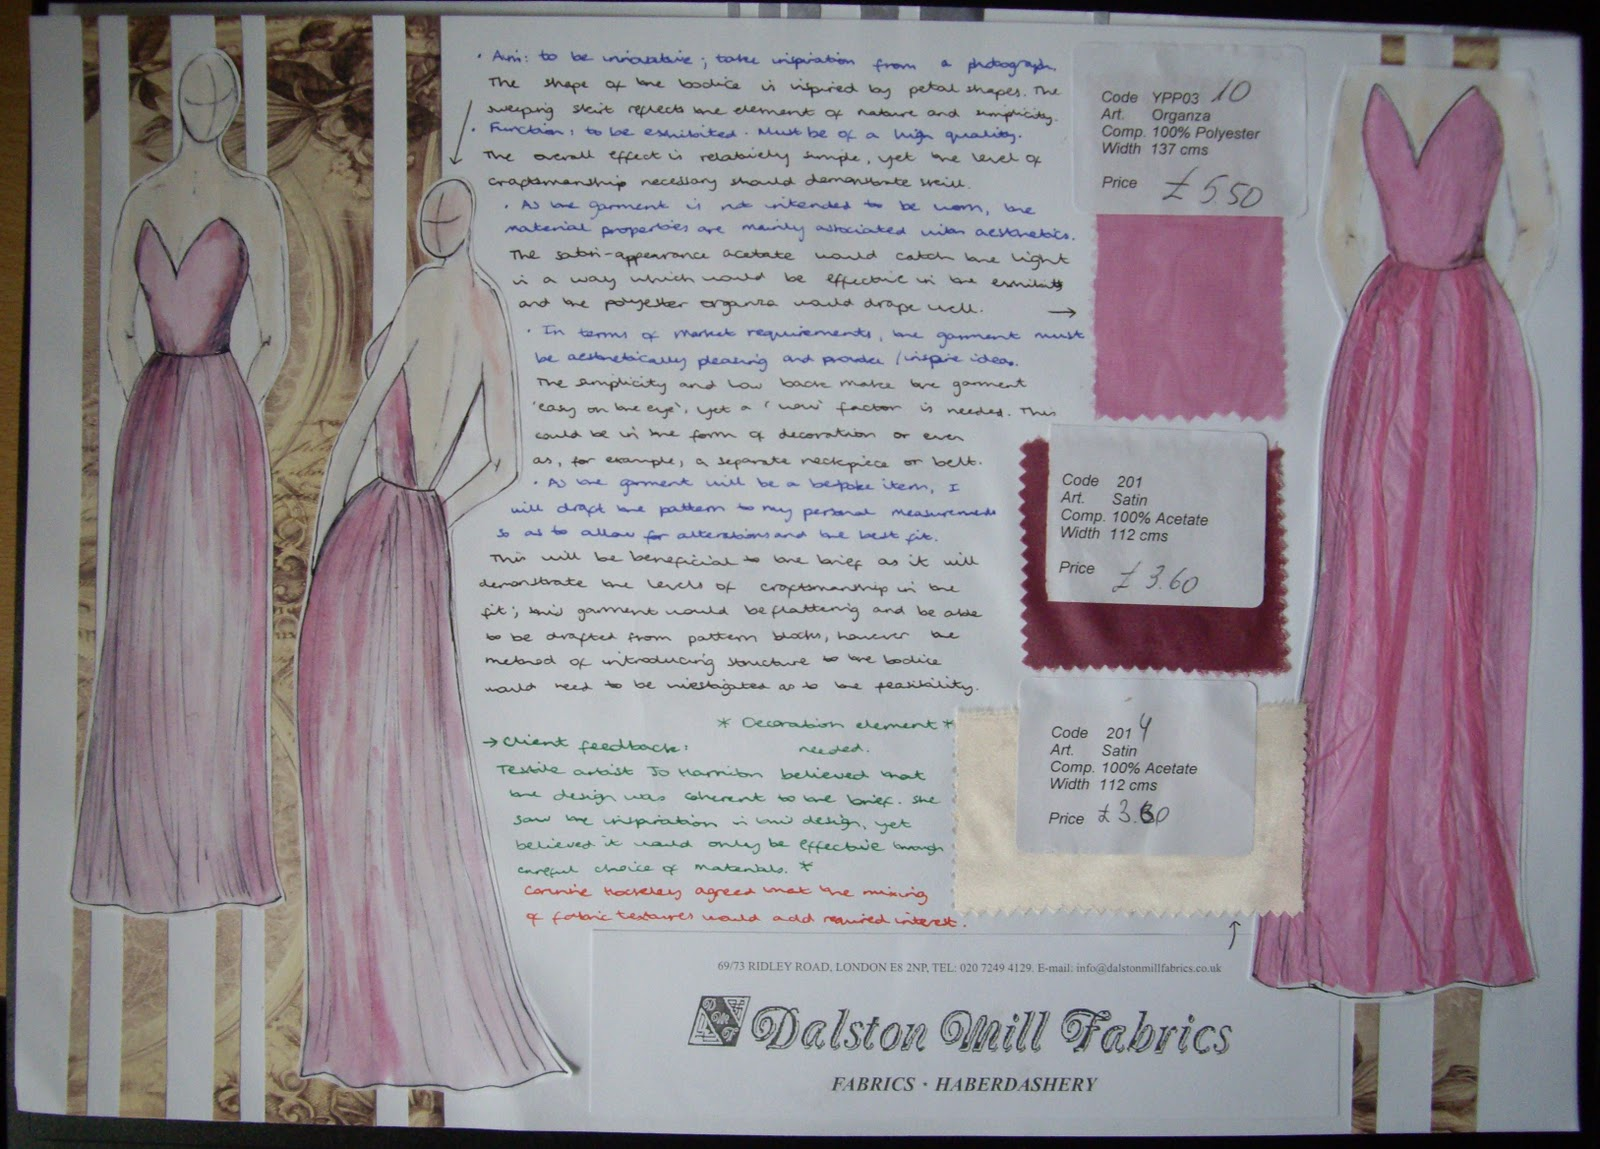 GCSE D&T: FASHION AND TEXTILES